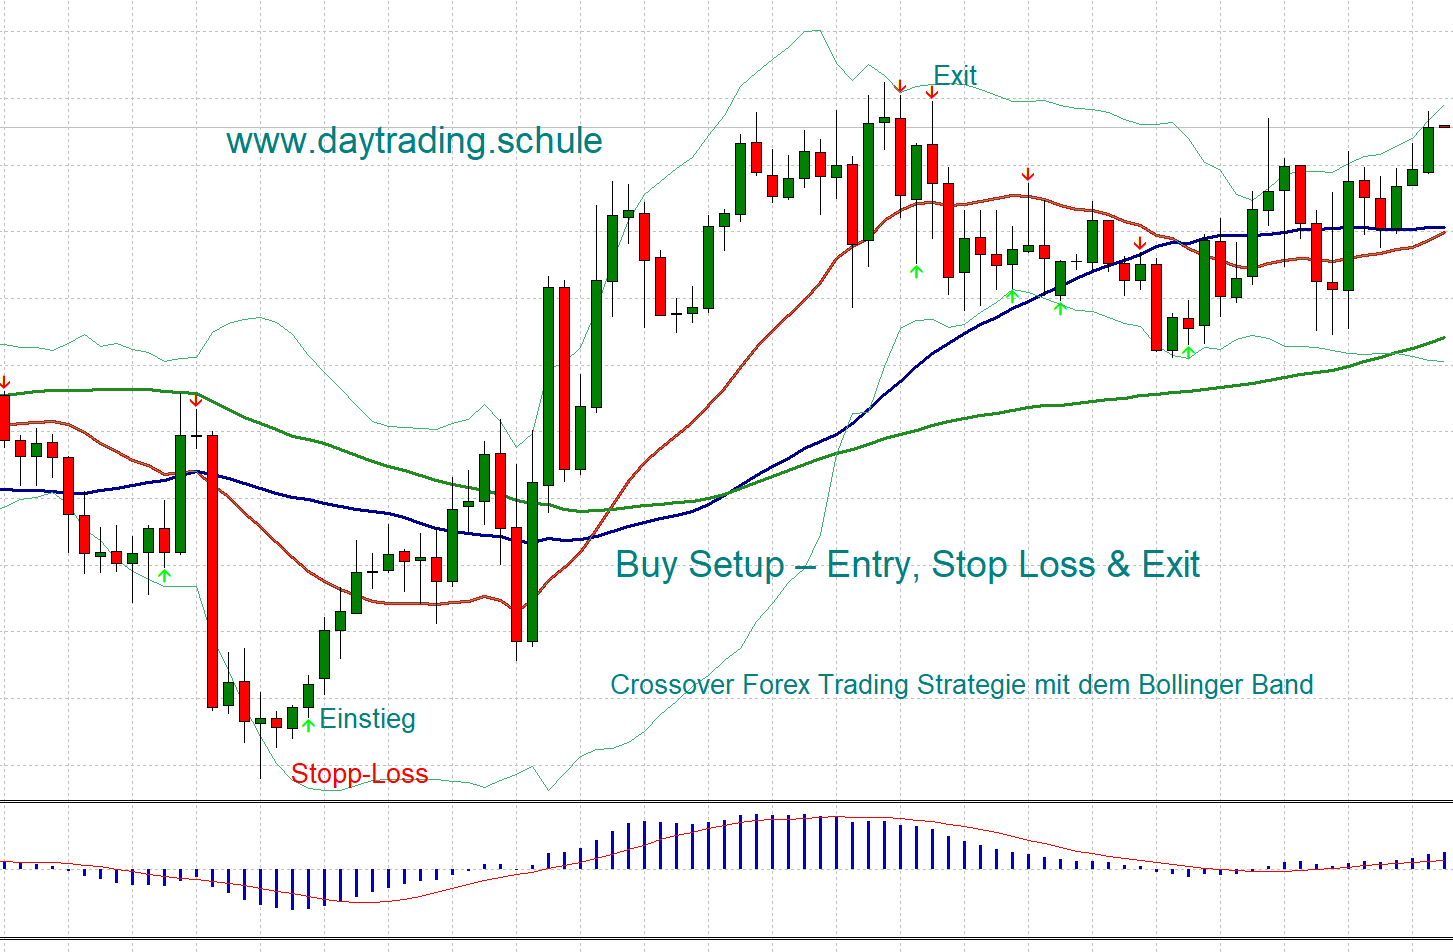 Bollinger Bands: Four Basic Trading Strategies